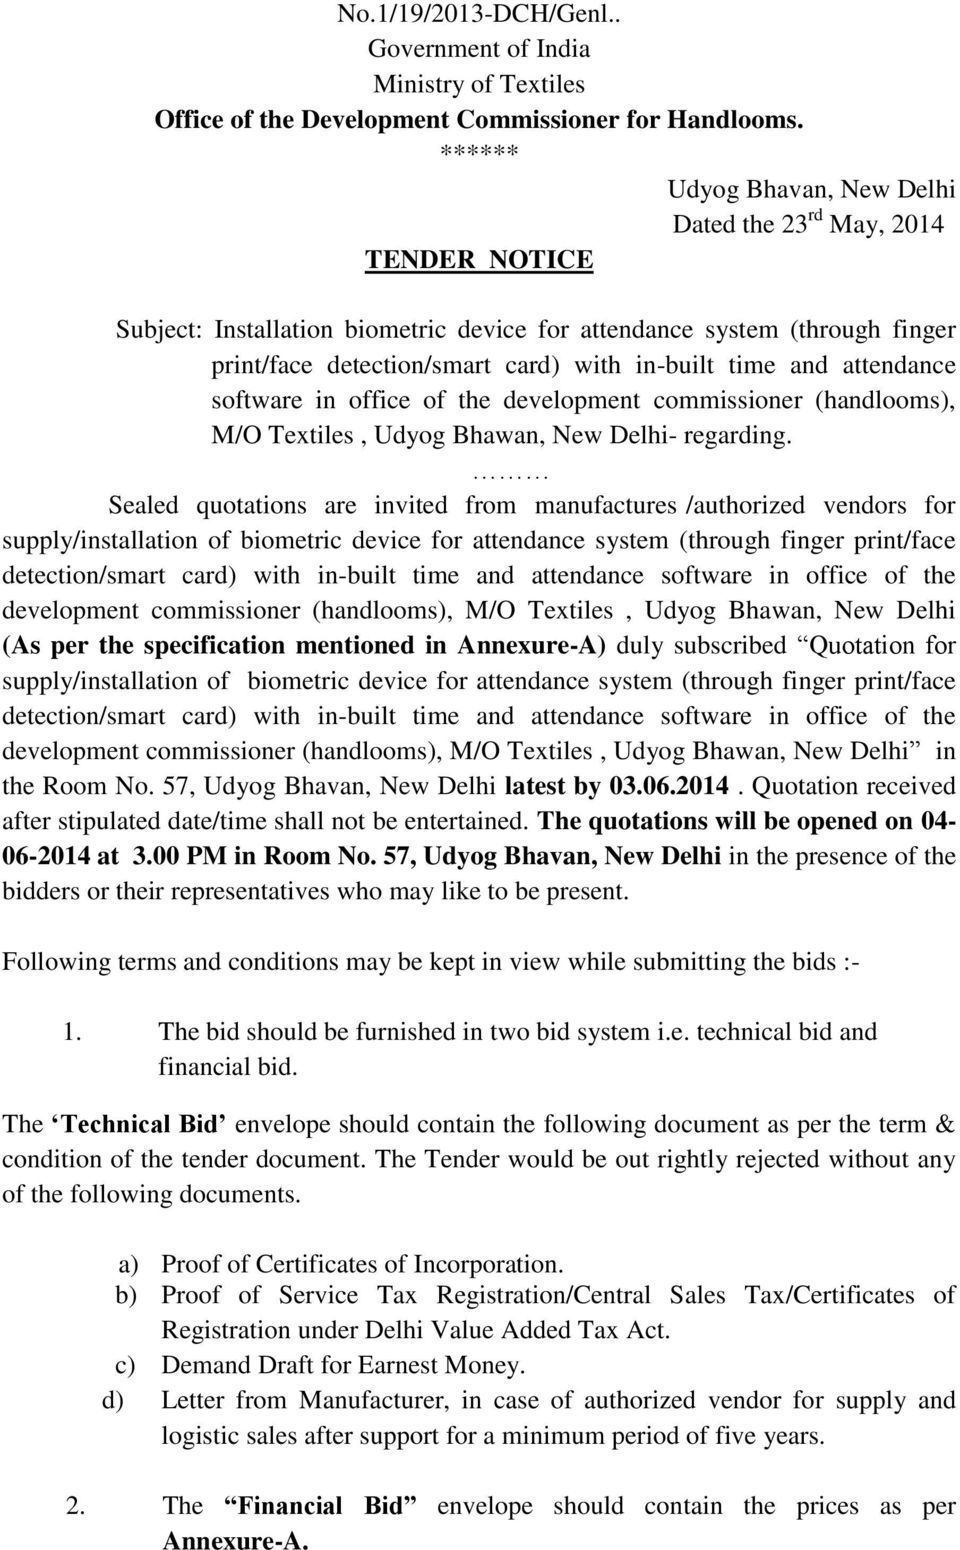 and attendance software in office of the development commissioner (handlooms), M/O Textiles, Udyog Bhawan, New Delhi- regarding.